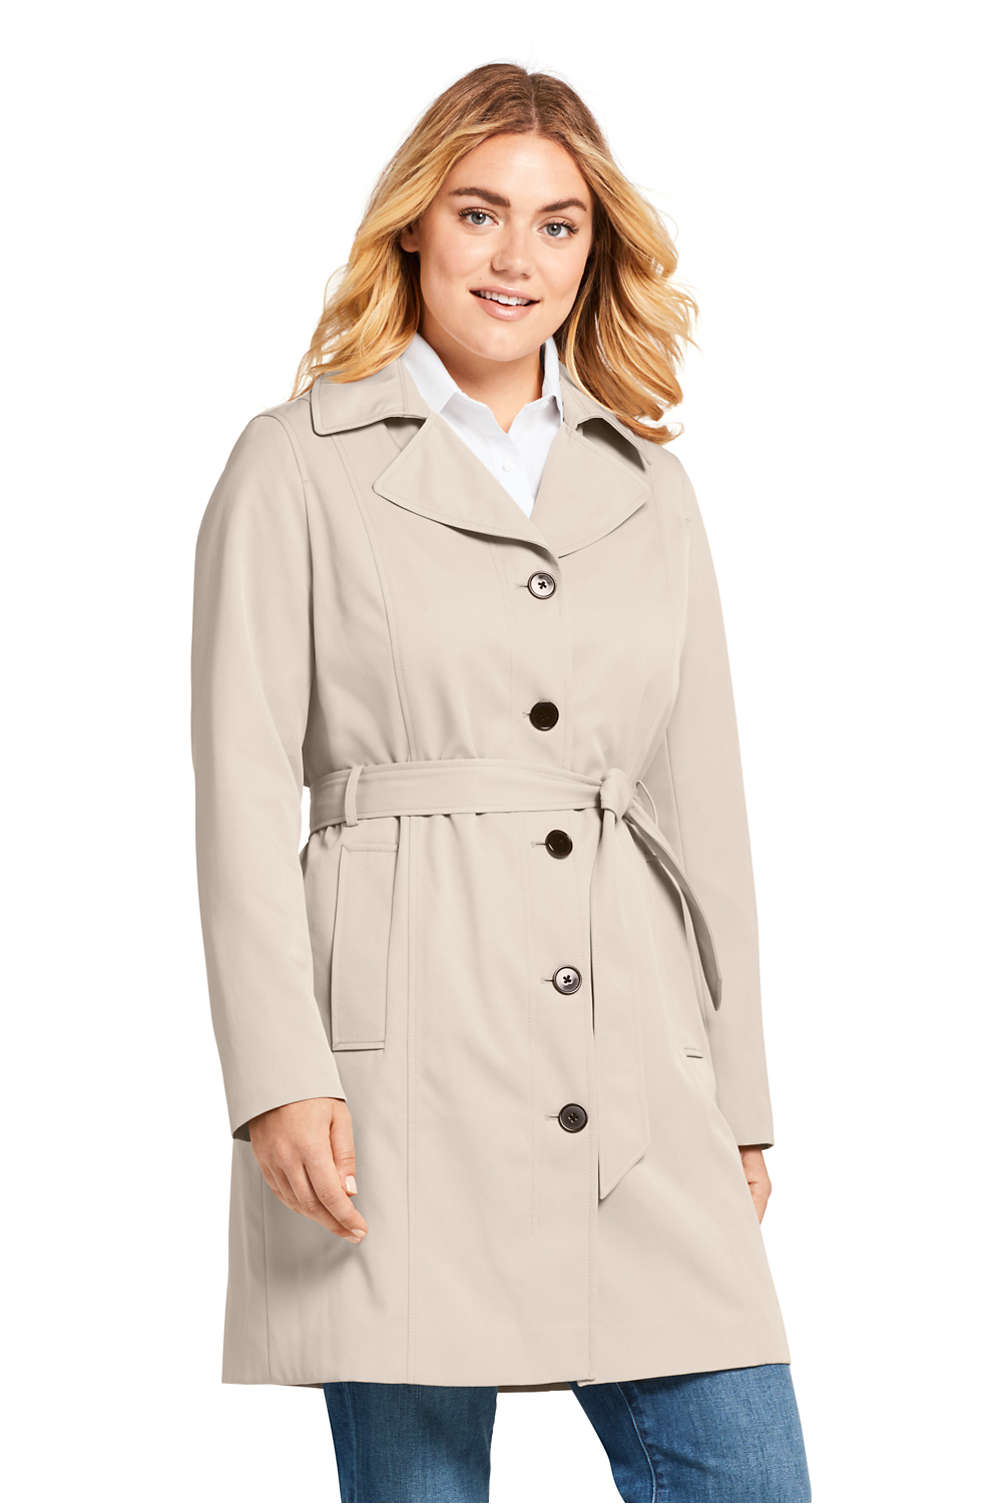 189caadf654 Women s Plus Size Lightweight Trench Coat from Lands  End